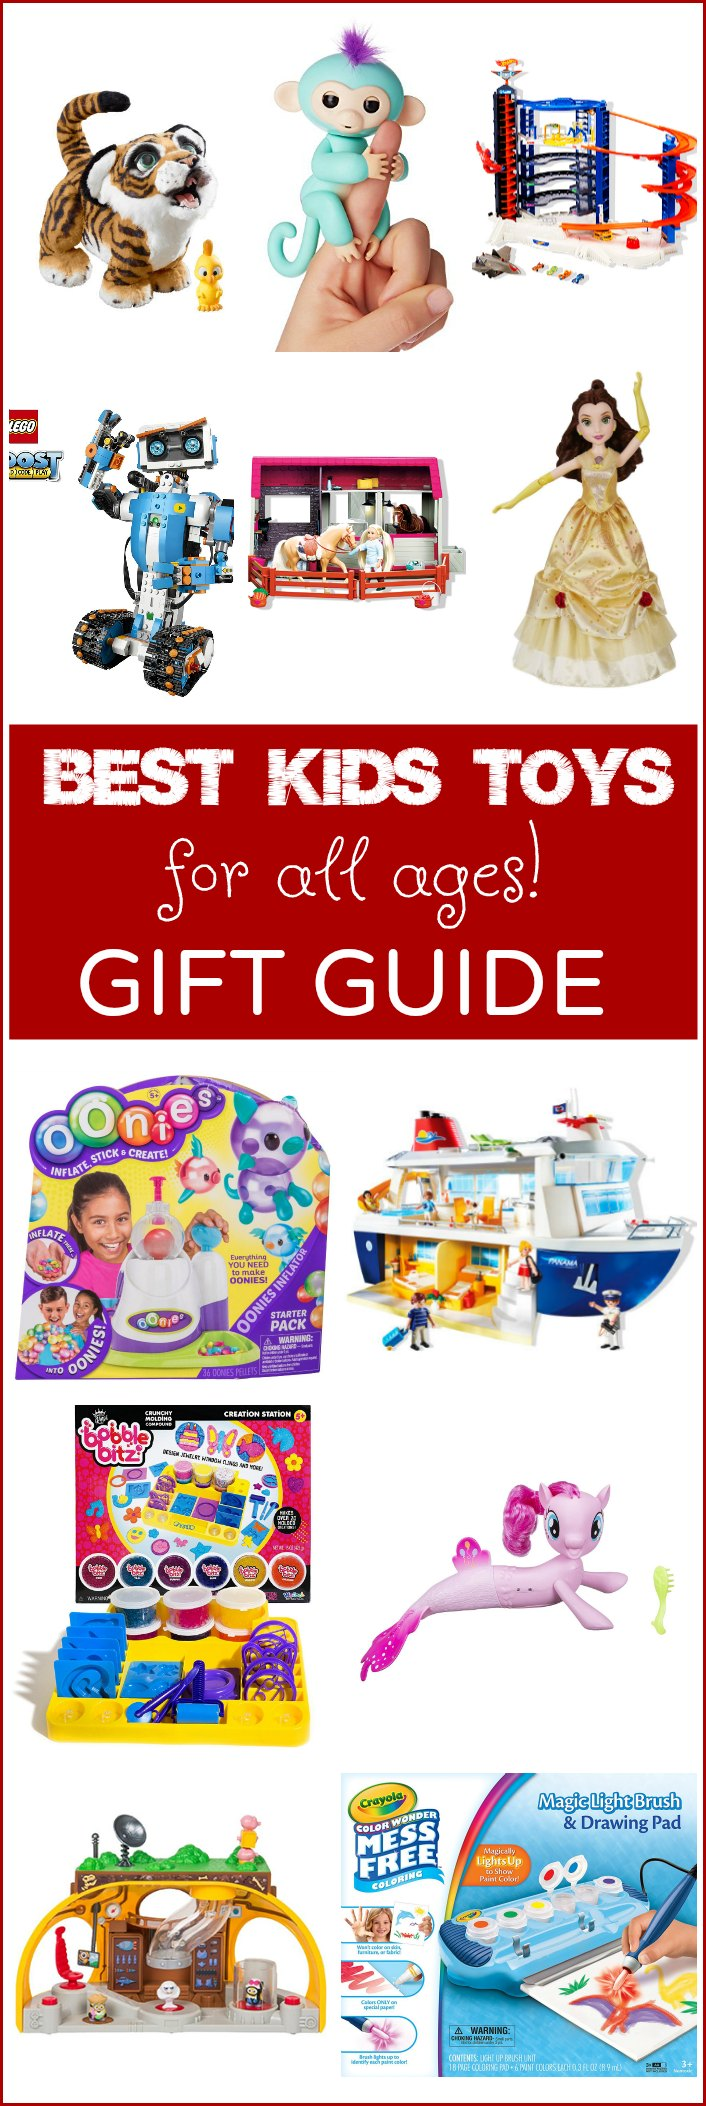 See all the BEST Toys for Kids in this amazing Gift Guide for Kids of all ages! It will make buying your next kids gift so easy with all the fun choices here! See tech gifts, dolls, Lego, Playmobil, Matchbox and other reputable gifts that fun loving kids will adore!